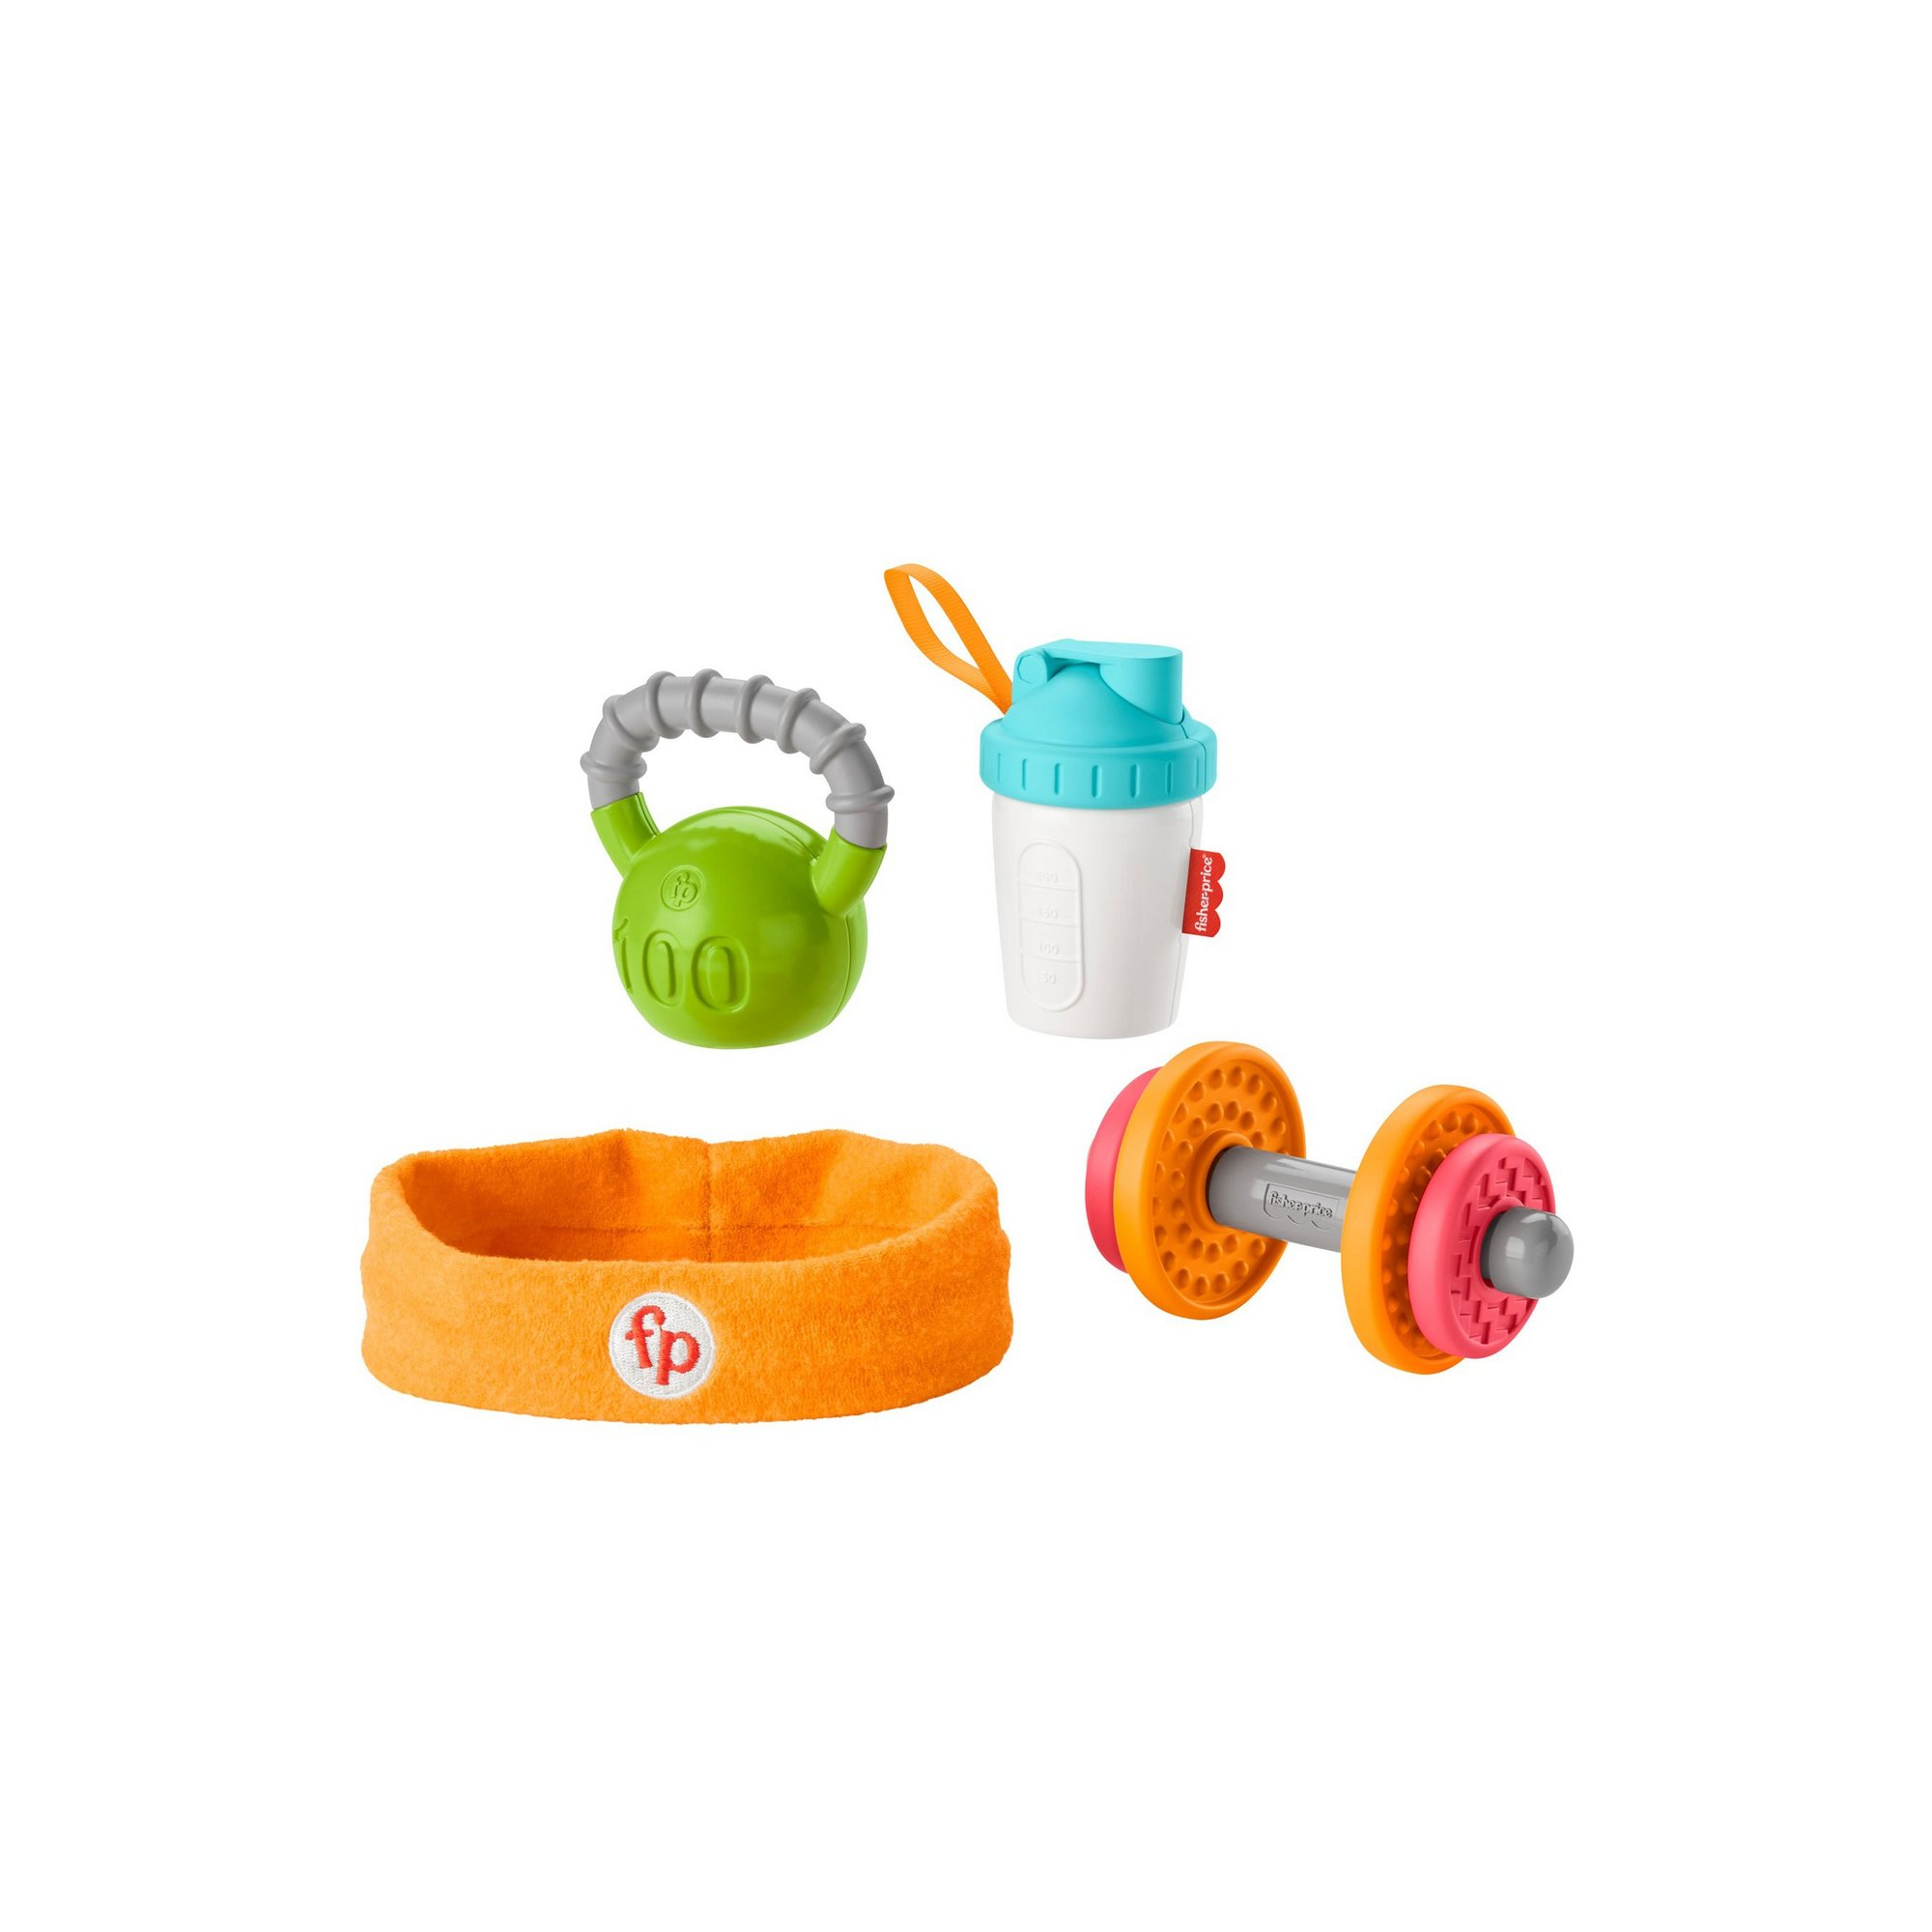 Image of Fisher Price Baby Biceps Gift Set